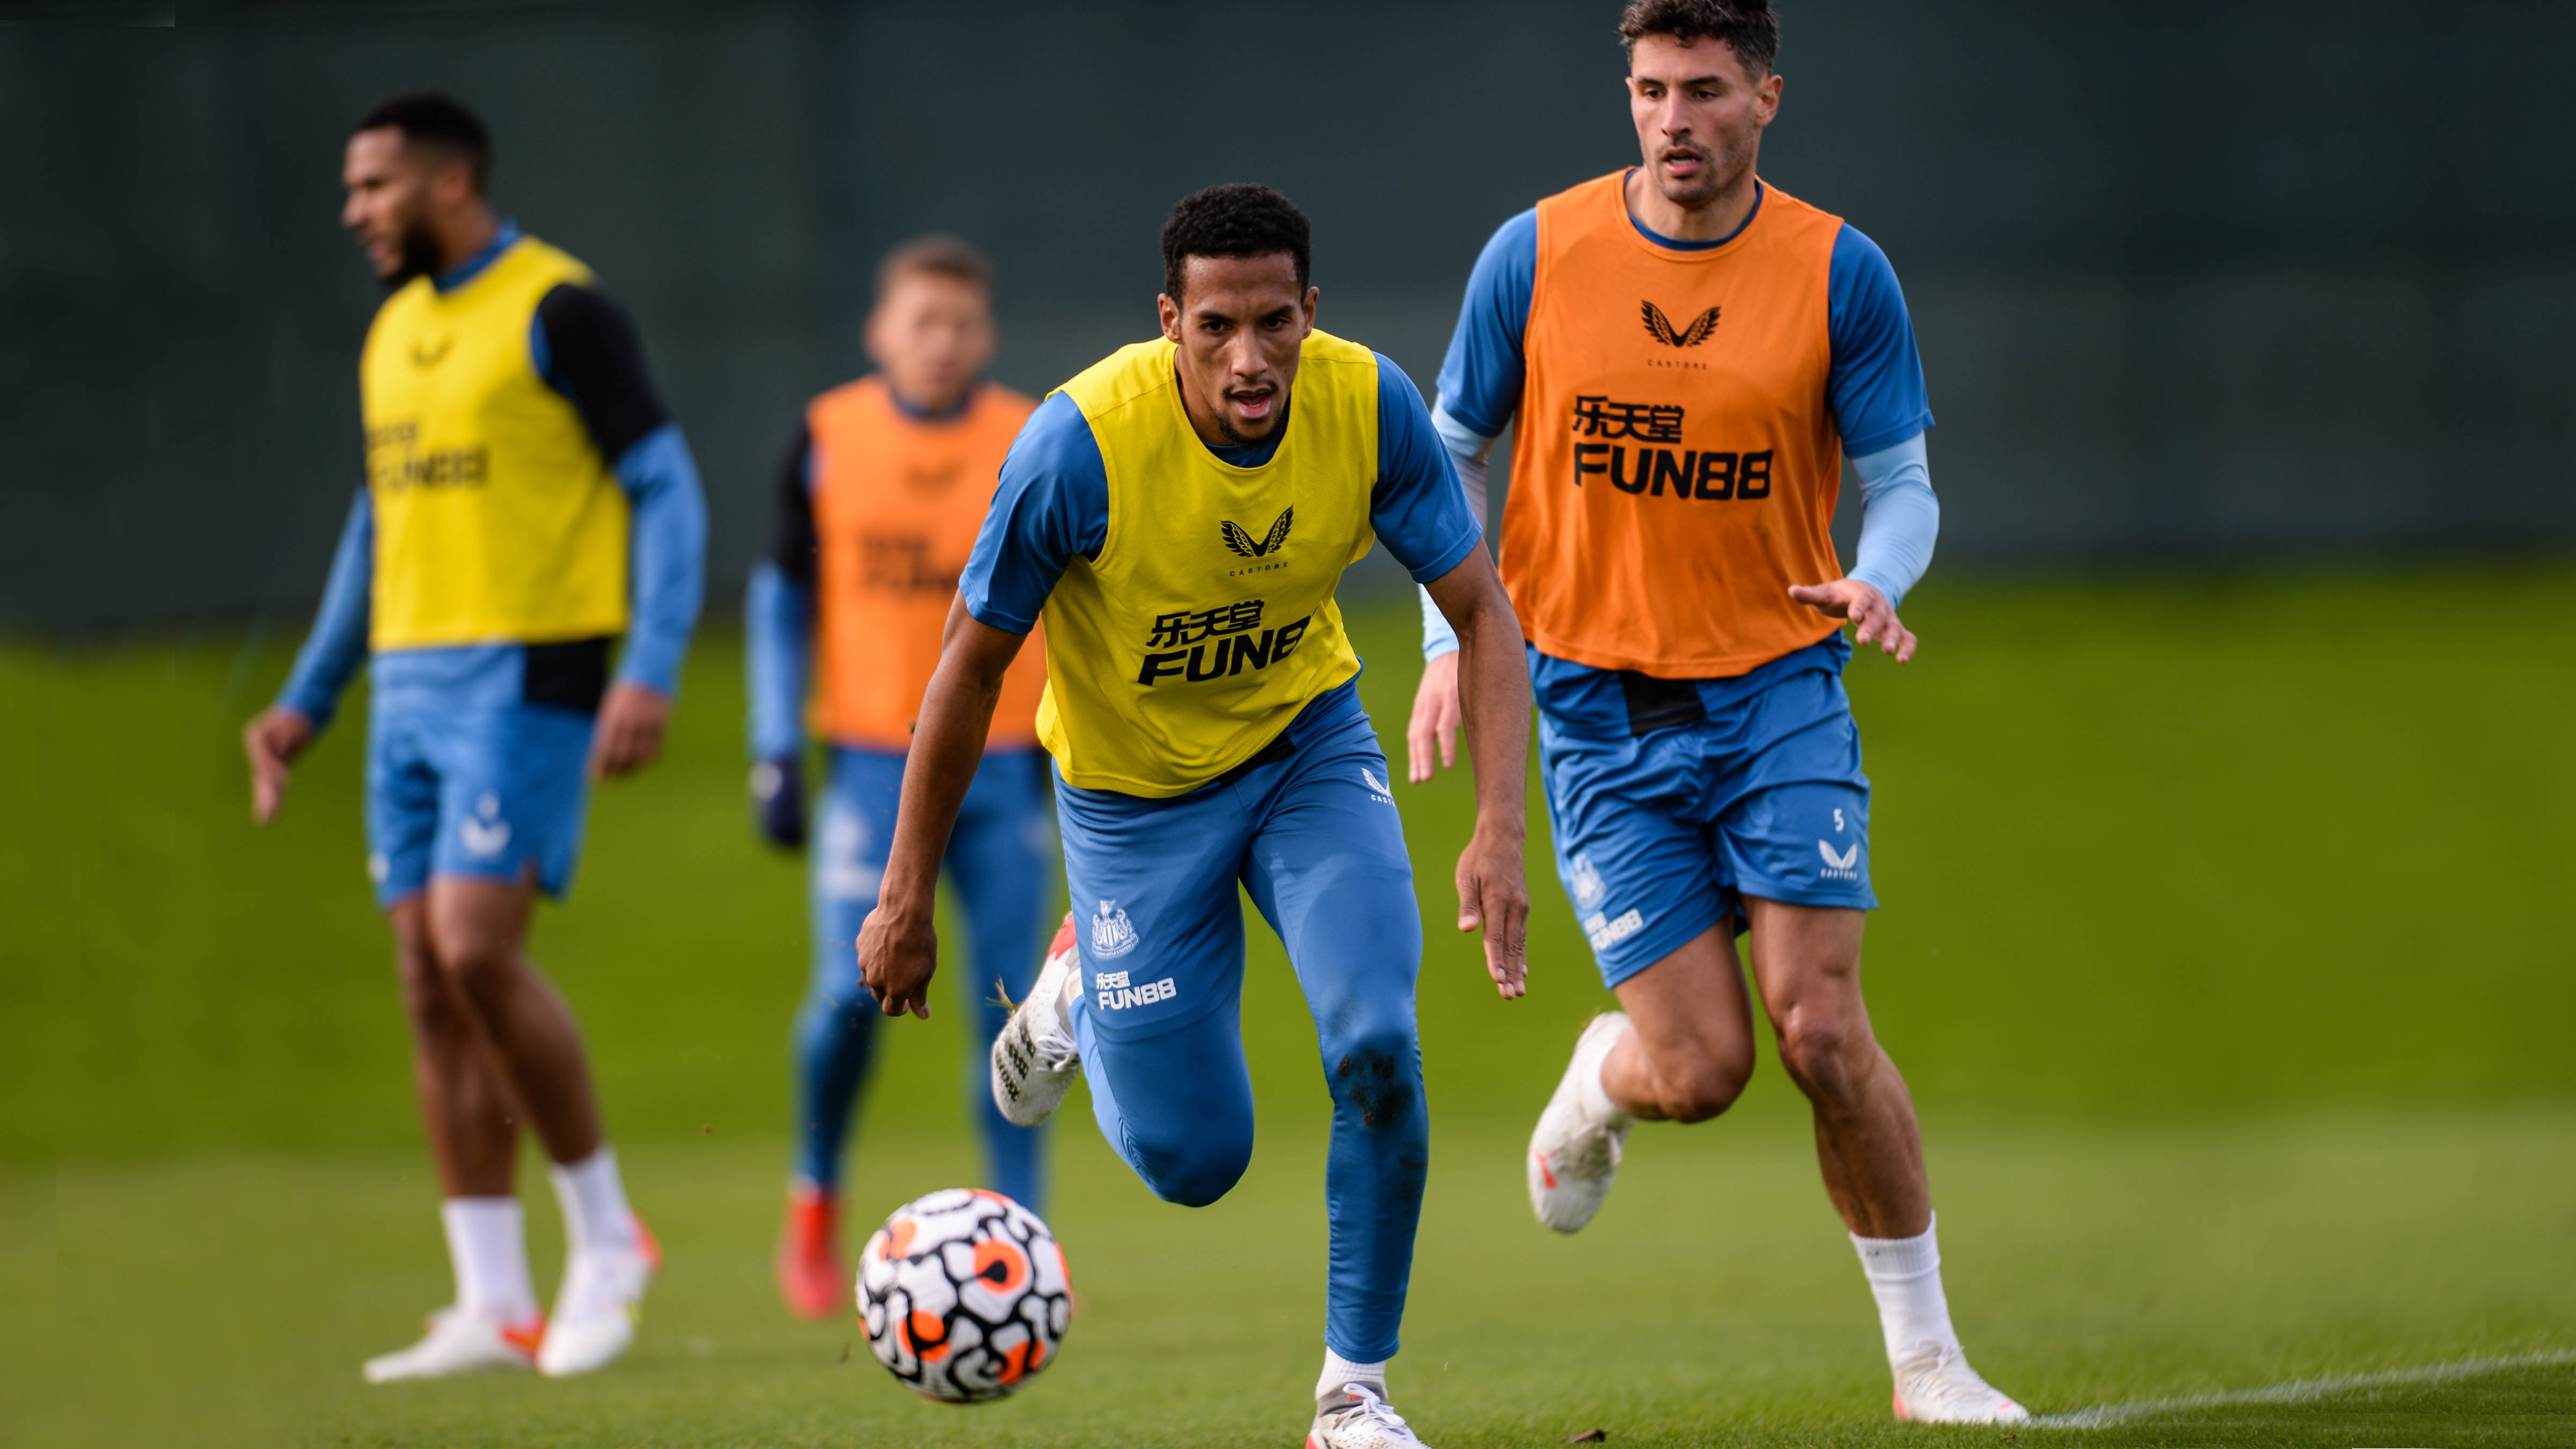 Toon in training: Preparing for Palace